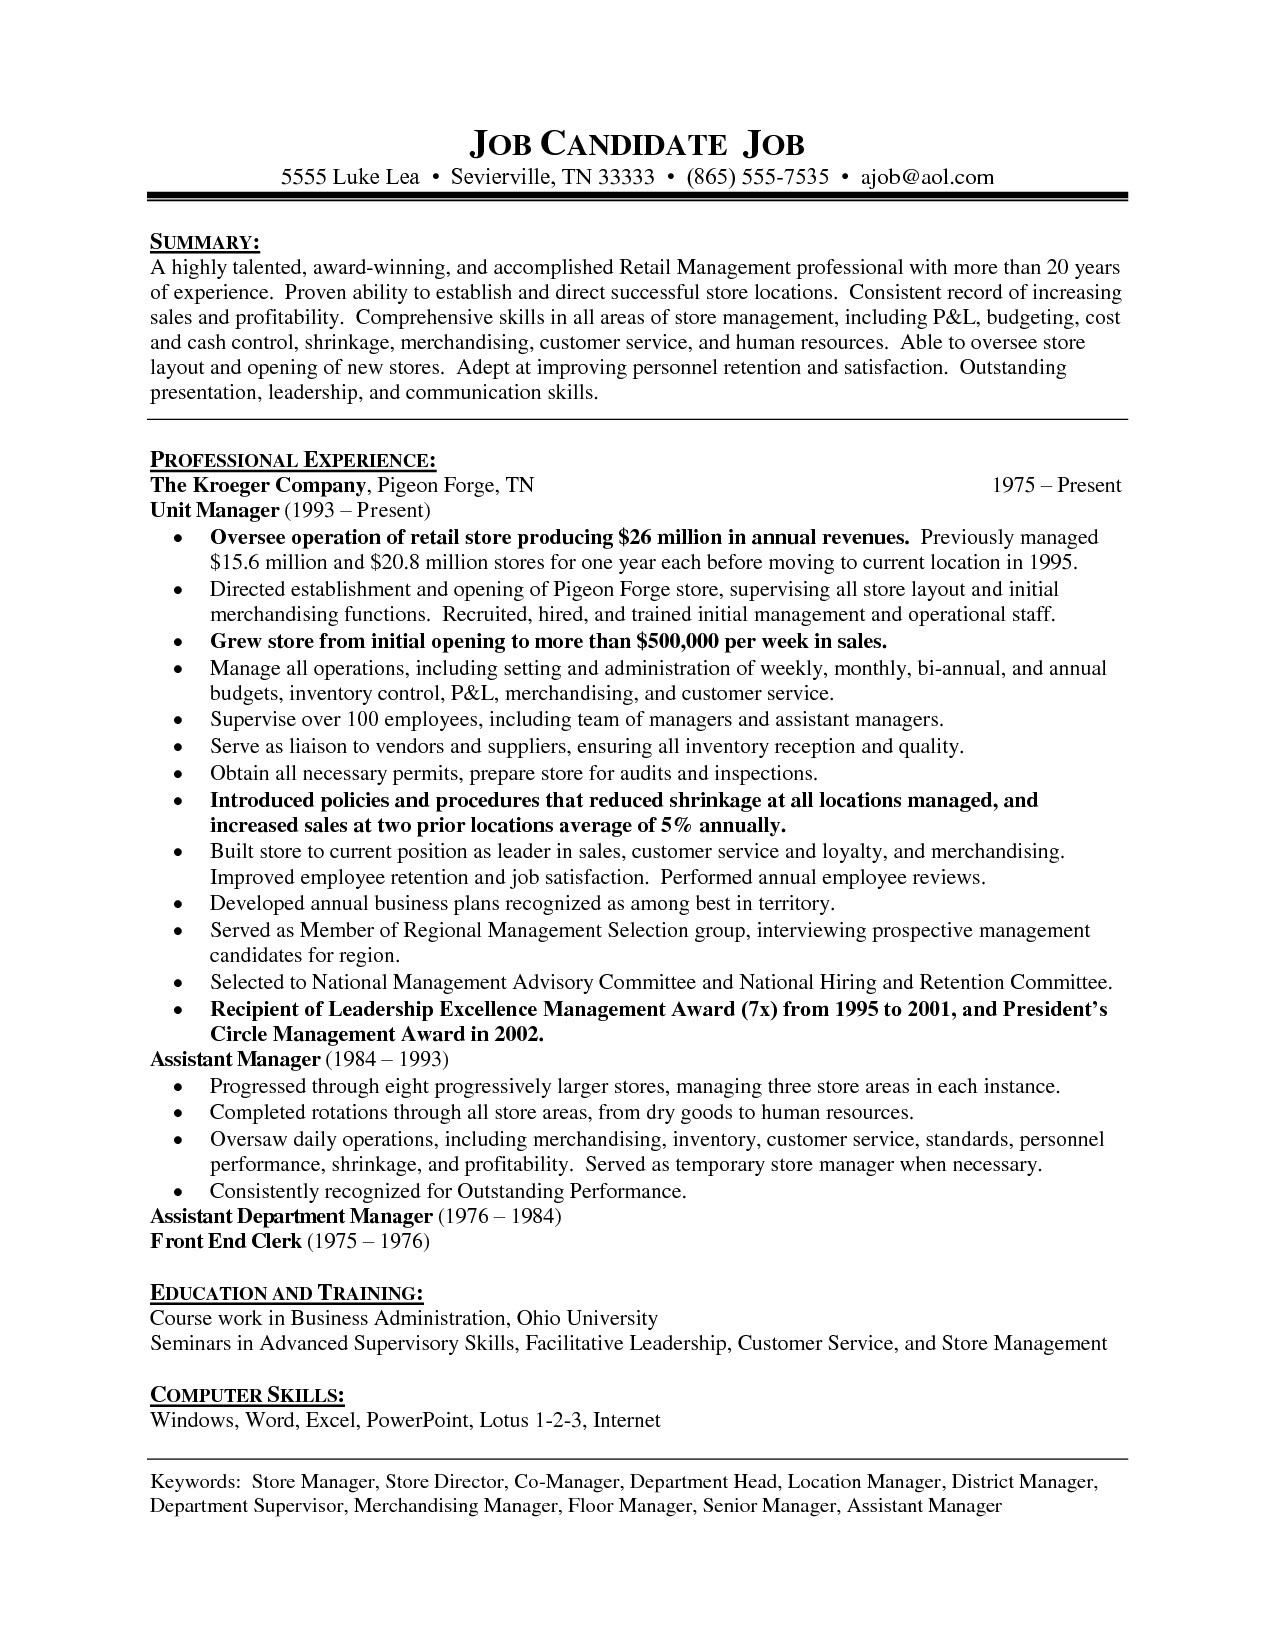 Retail Store Resume - Sample Resume for Store Manager Position New Retail Supervisor